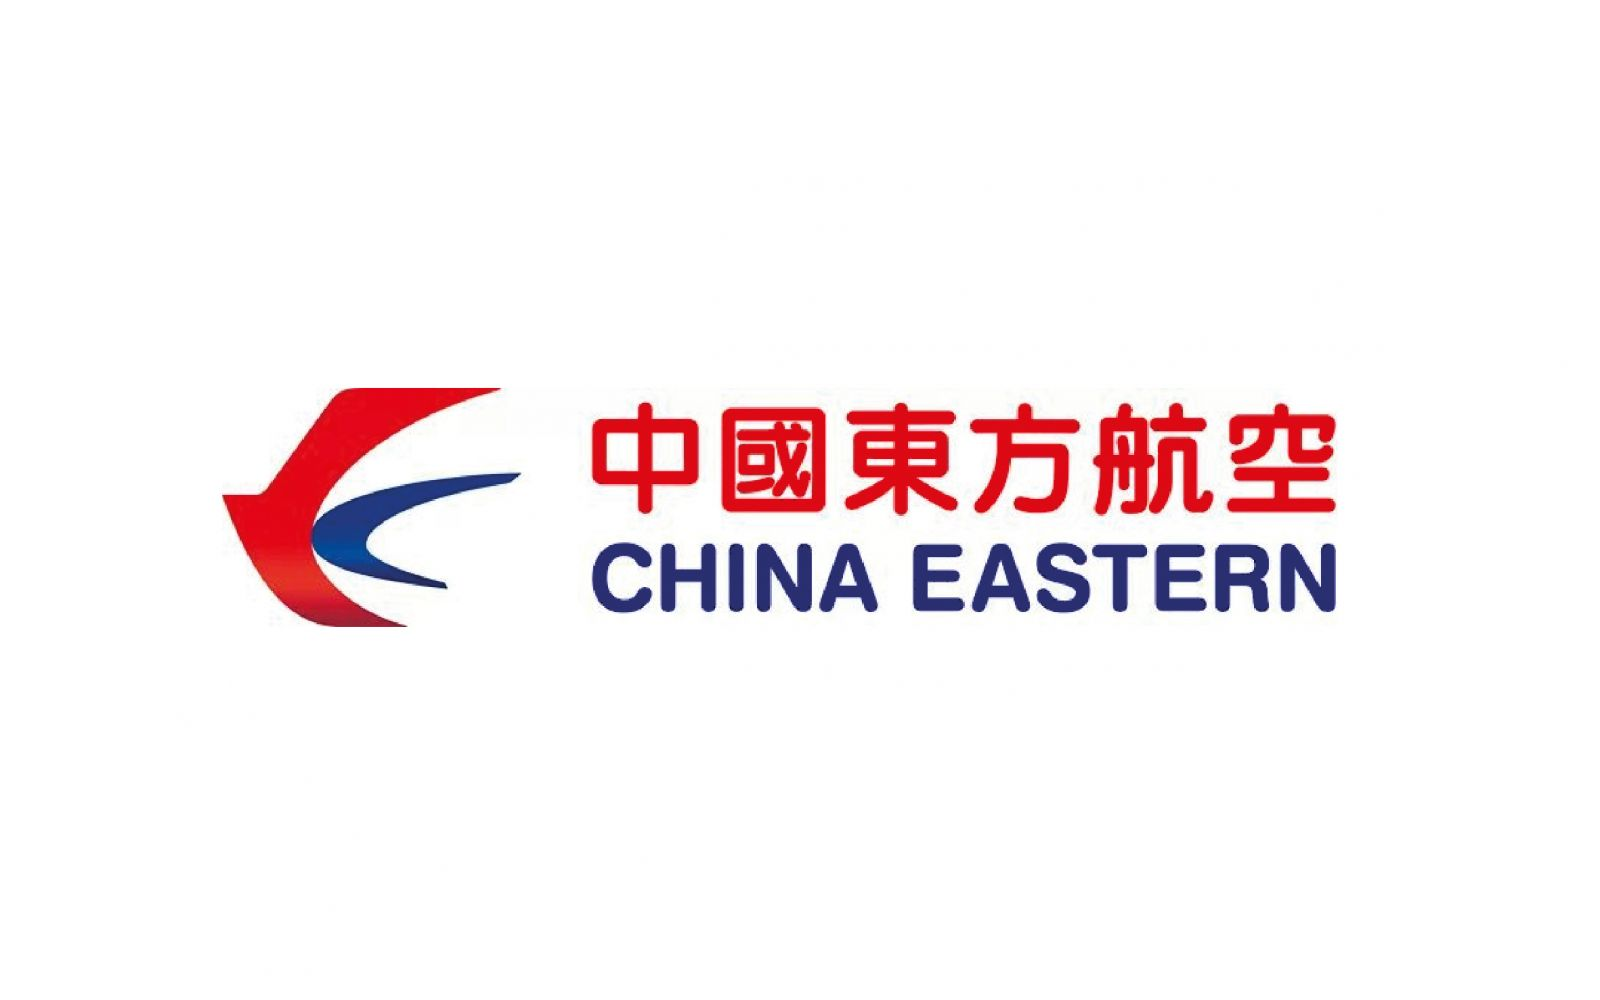 China Eastern Airlines selects ICTS as their security partner at London Gatwick Airport